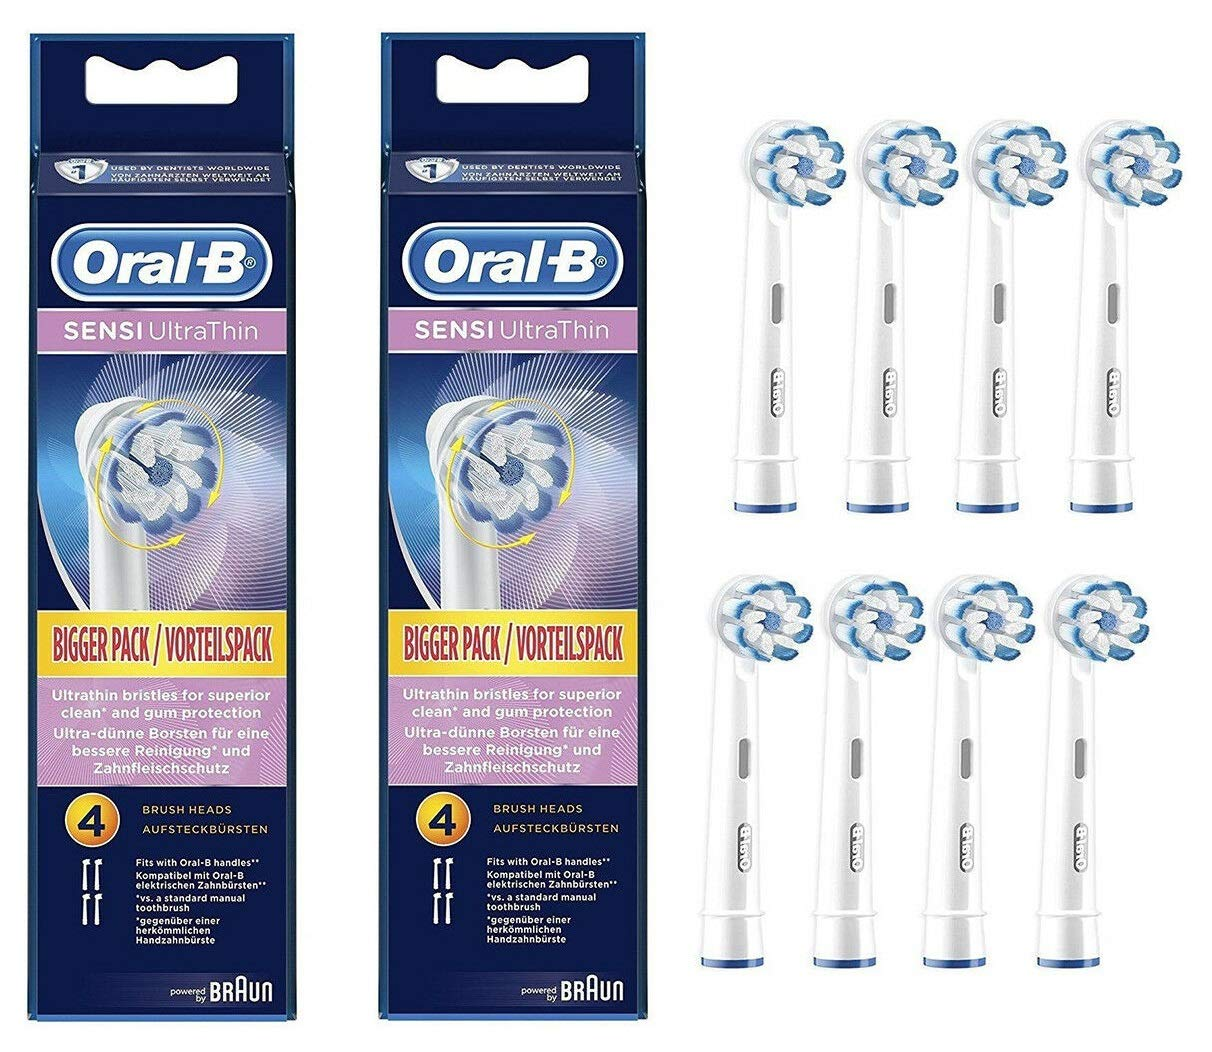 Oral-B Professional Sensitive Gum Care Replacement Brush Head iaxIai, 2 Pack (3 Brush Heads)